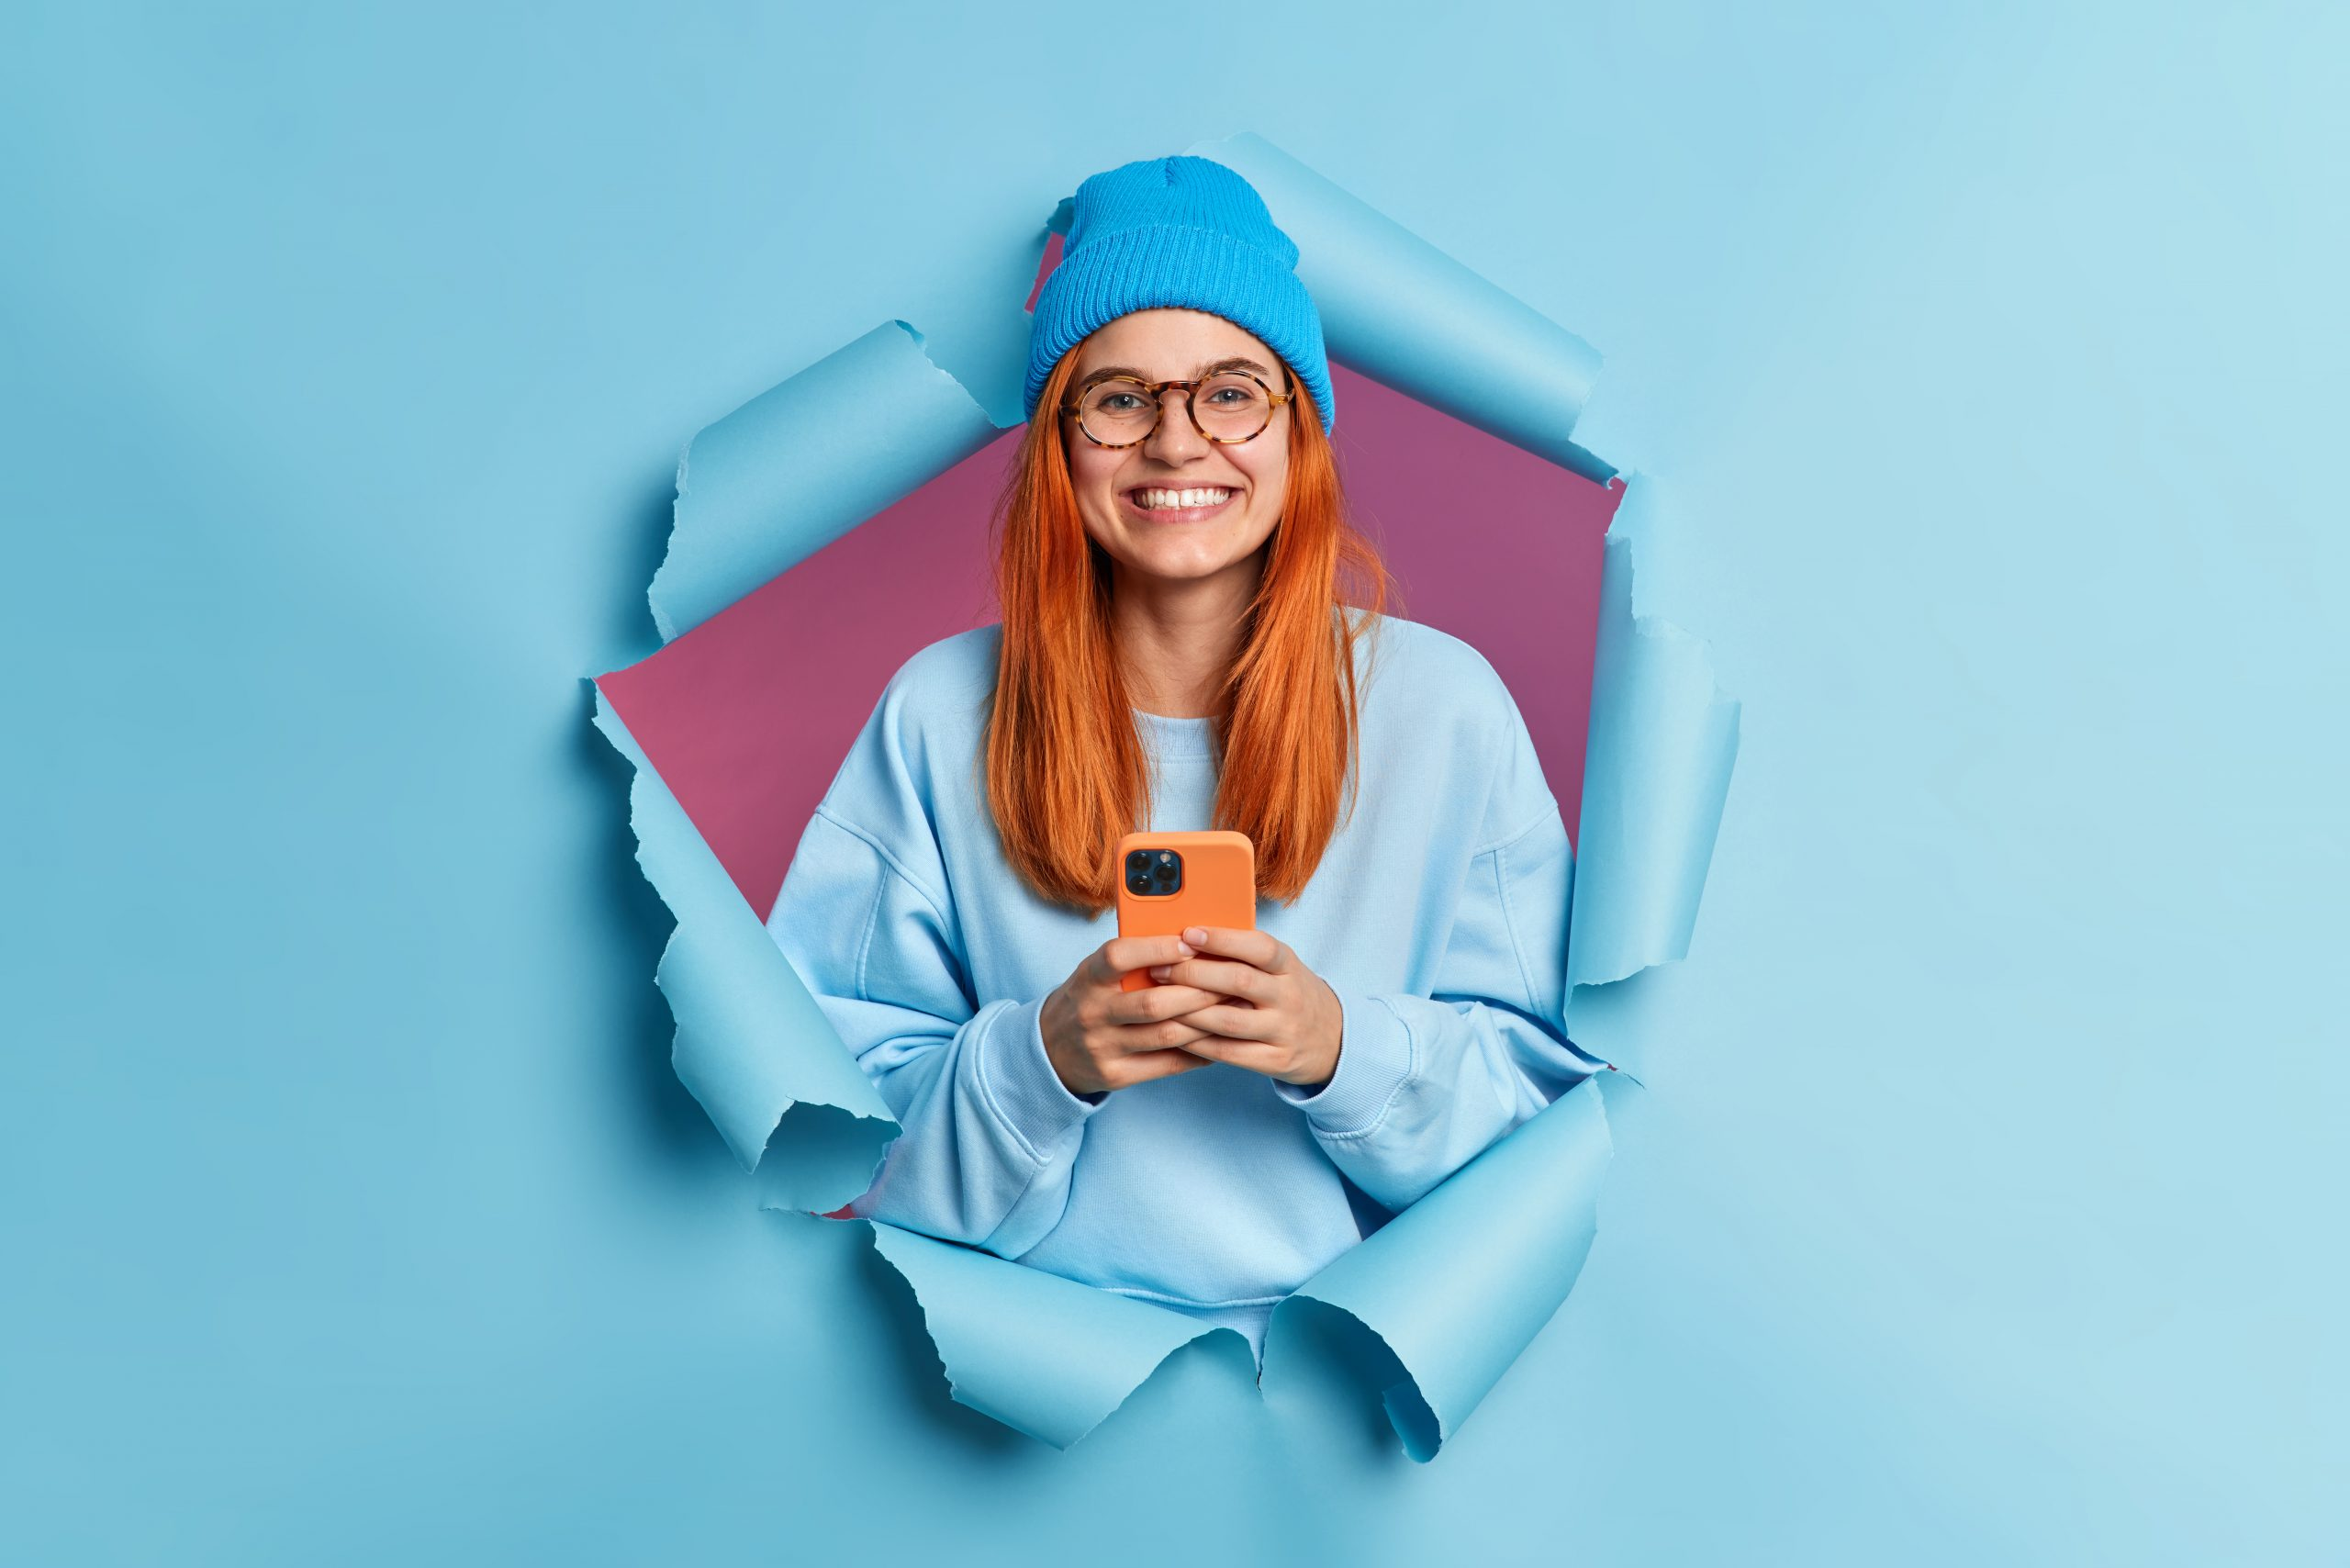 Happy smiling millennial girl with red hair holds modern cellular enjoys texting in social media uses mobile network services wears blue jumper and hat poses in ripped torn paper background.